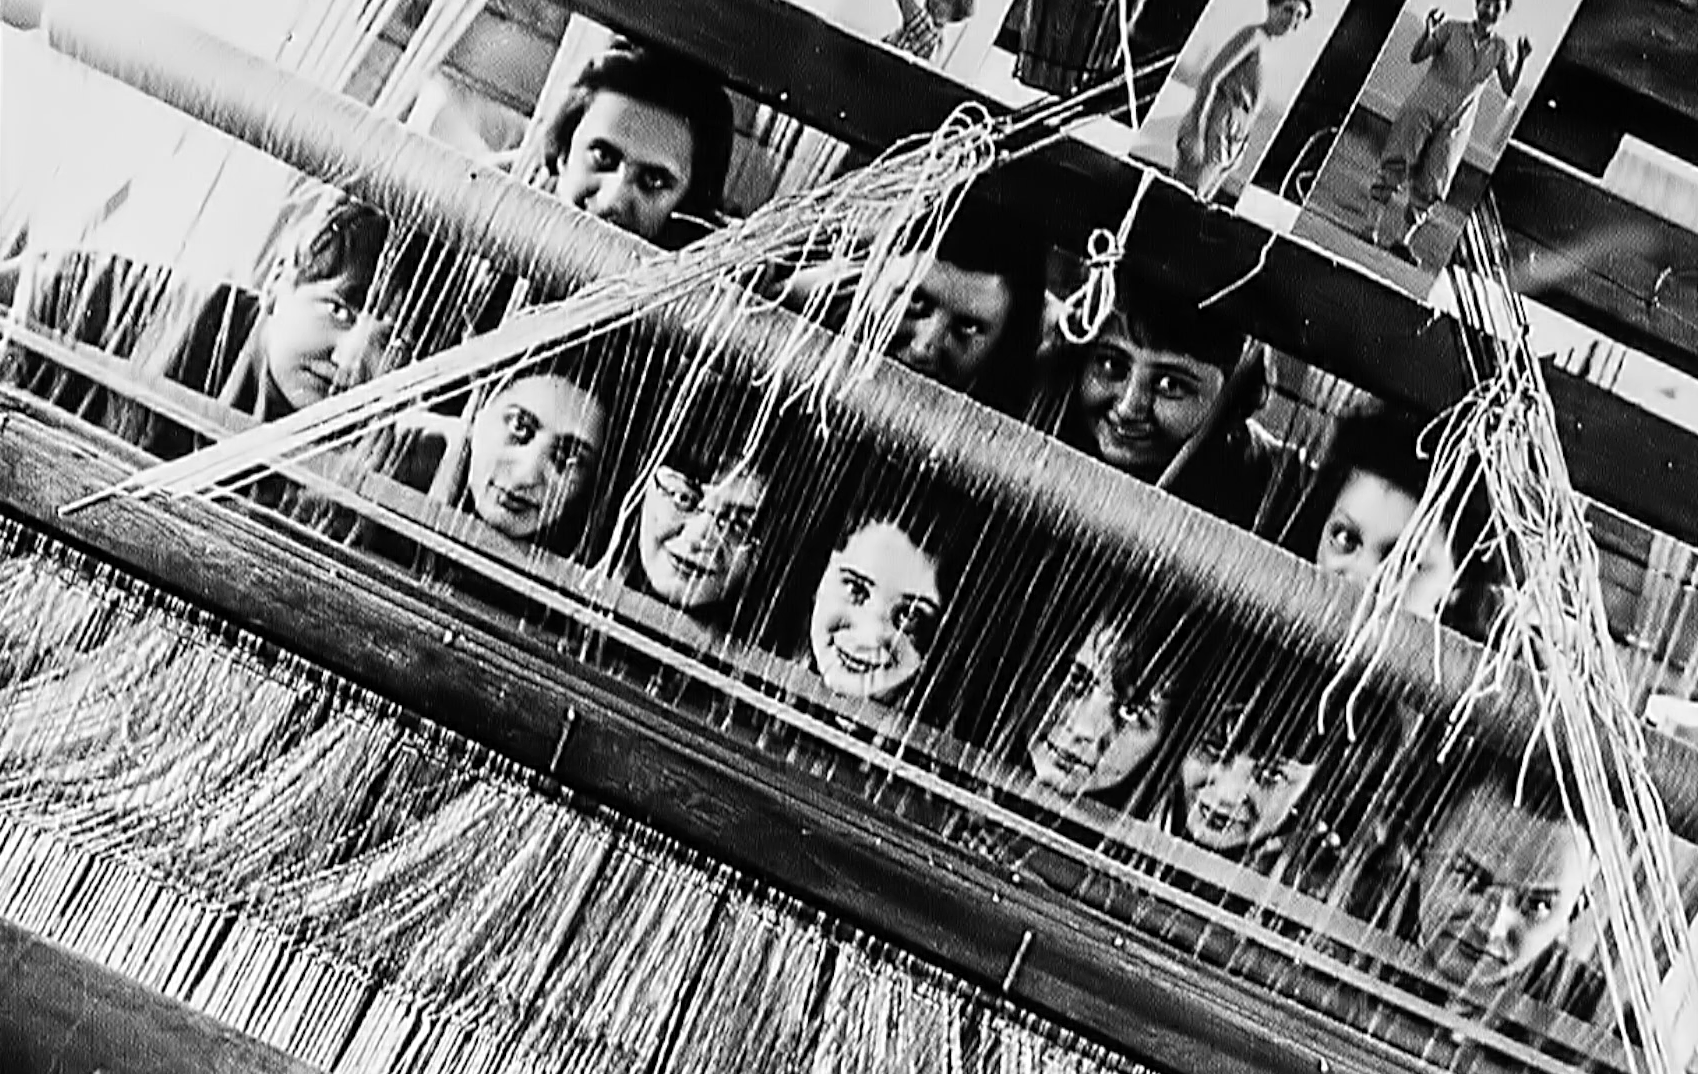 A video still featuring 11 women's faces peering out from behind a weaving loom at the Bauhaus.